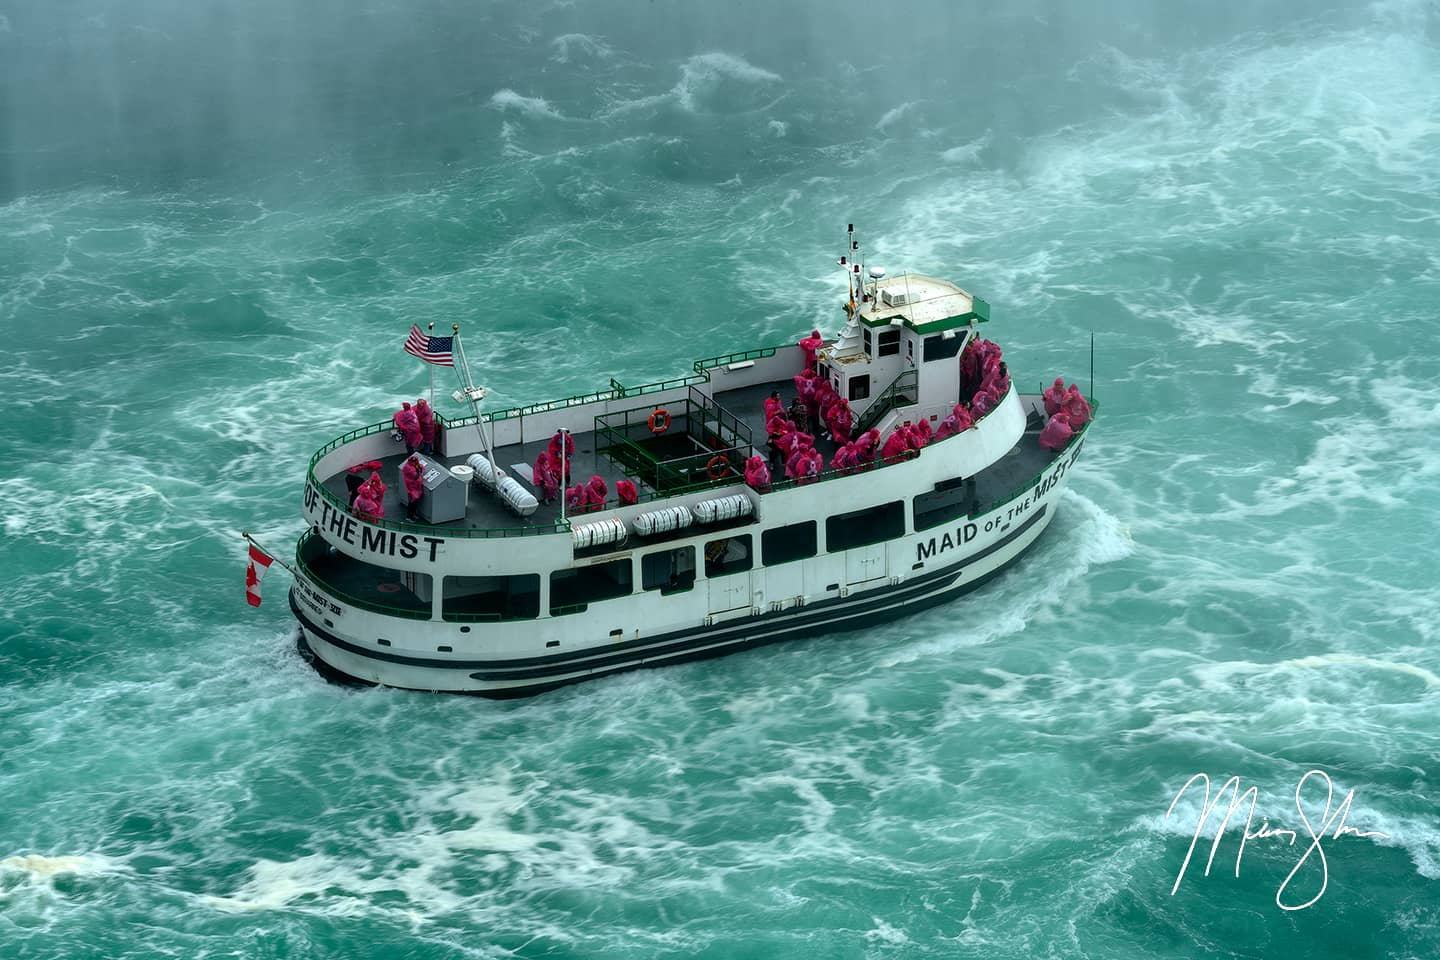 Maid of the Mist - Niagara Falls, Ontario, Canada